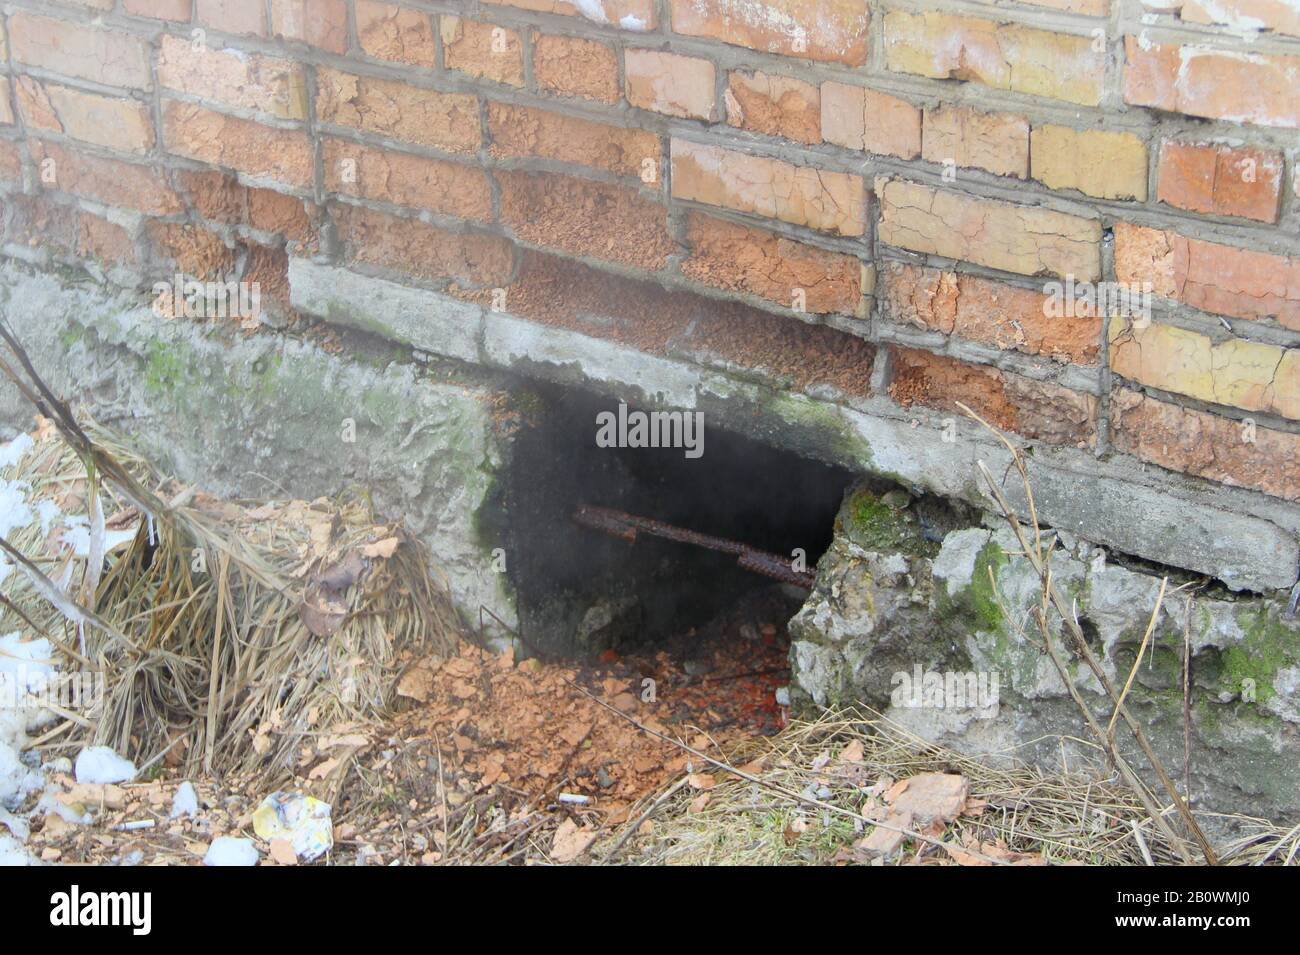 Hole In A Brick Wall Of A House The Foundation Of The House Covered With Moss Construction Waste Pieces Of Rubble Stock Photowith Empty Space For Text And Design Stock Photo